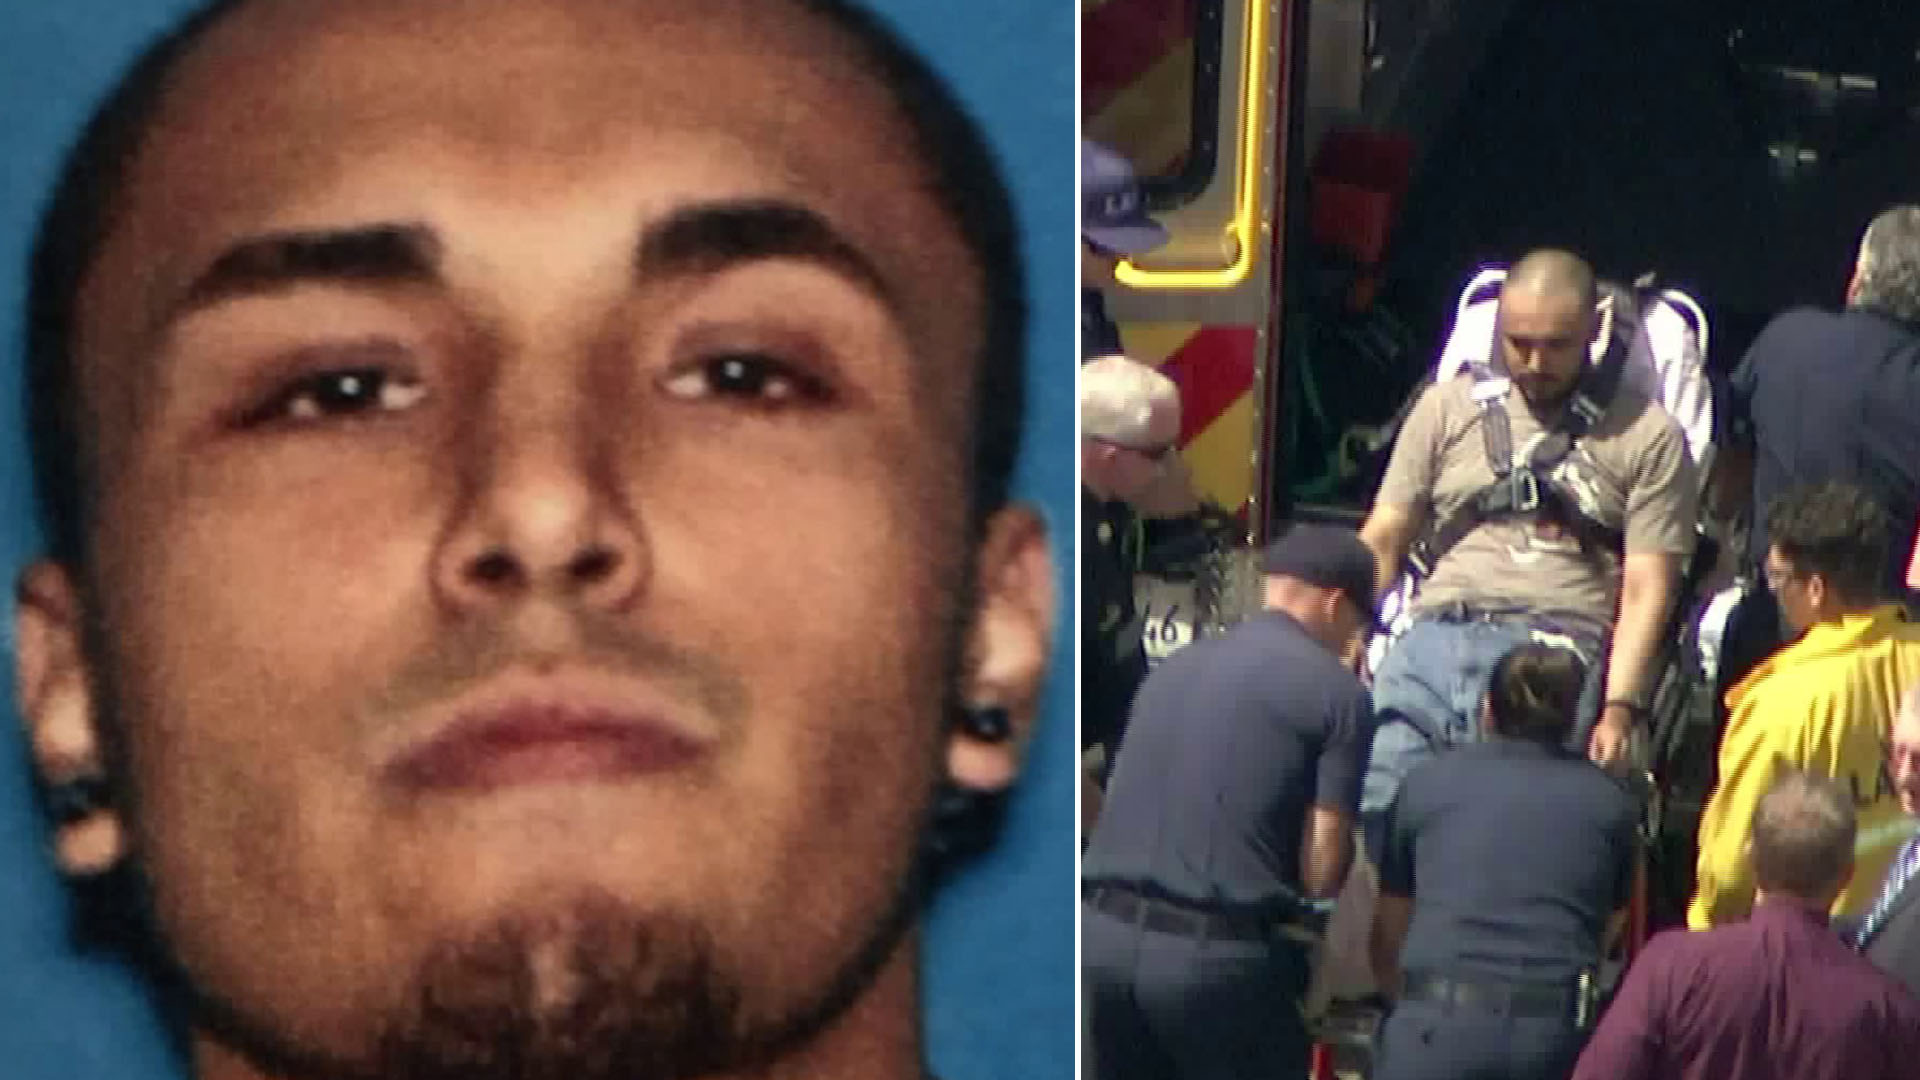 Gerry Zaragoza is seen in an image released by the Los Angeles Police Department and Officers take a man suspected of killing at least three people into custody on July 25, 2019, in Canoga Park. (Credit: KTLA)